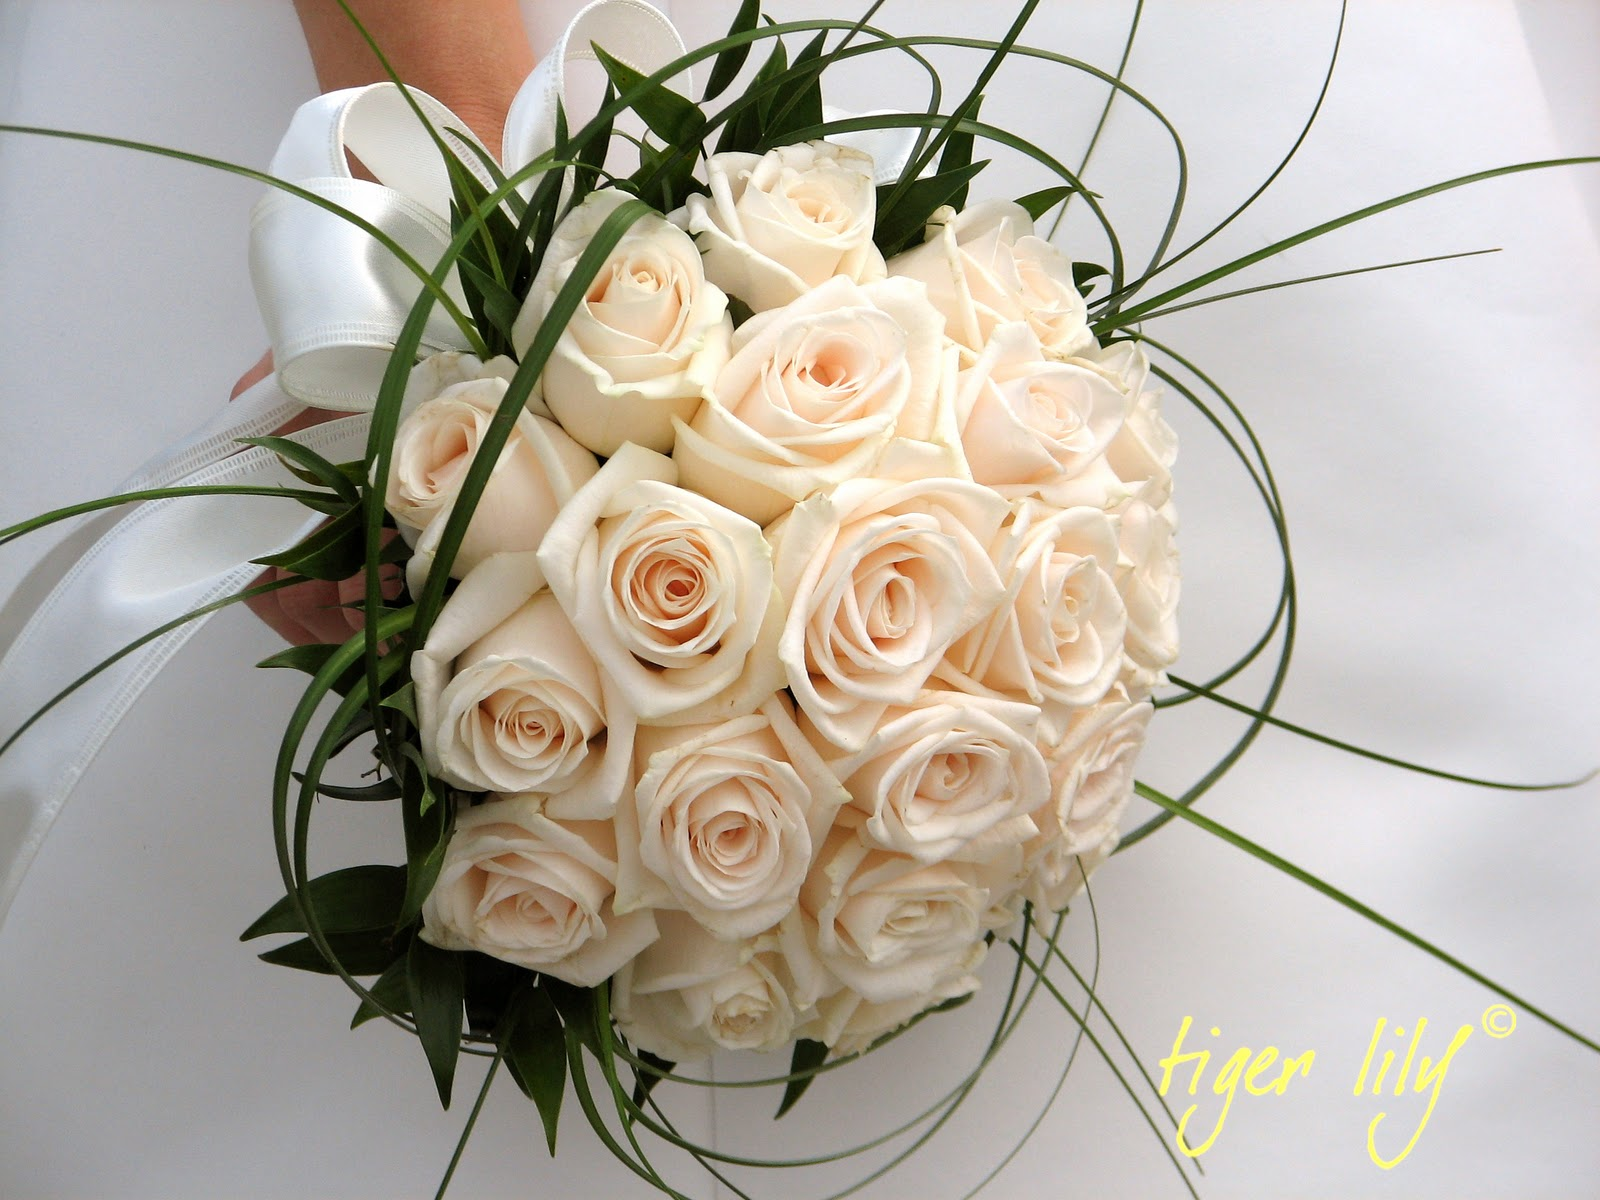 Tigerflowers the meaning of roses part 2 white roses the meaning of roses part 2 white roses mightylinksfo Images